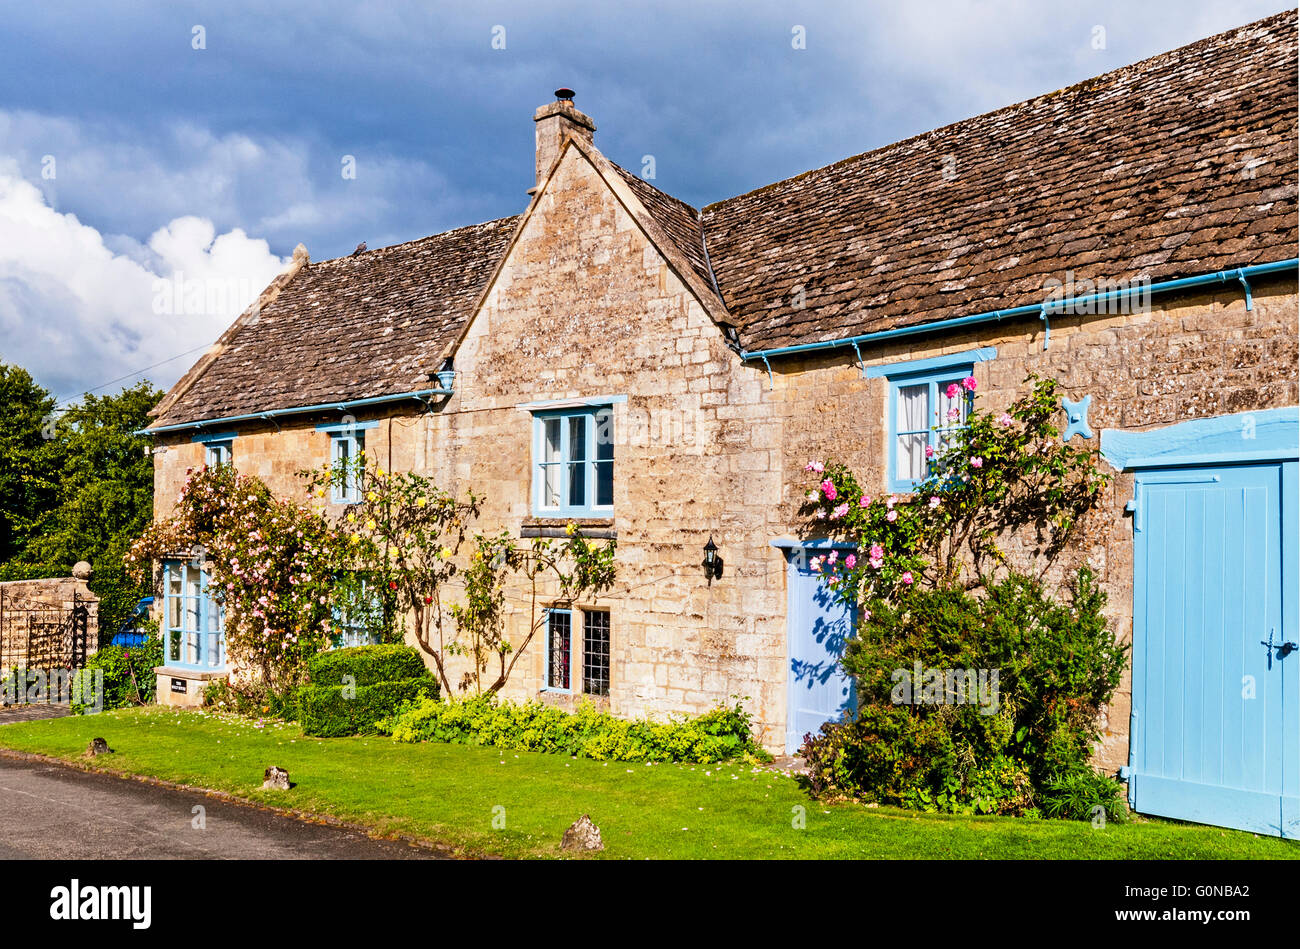 Cottage in the Heart of England, Bauernkate im Herzen Englands - Stock Image